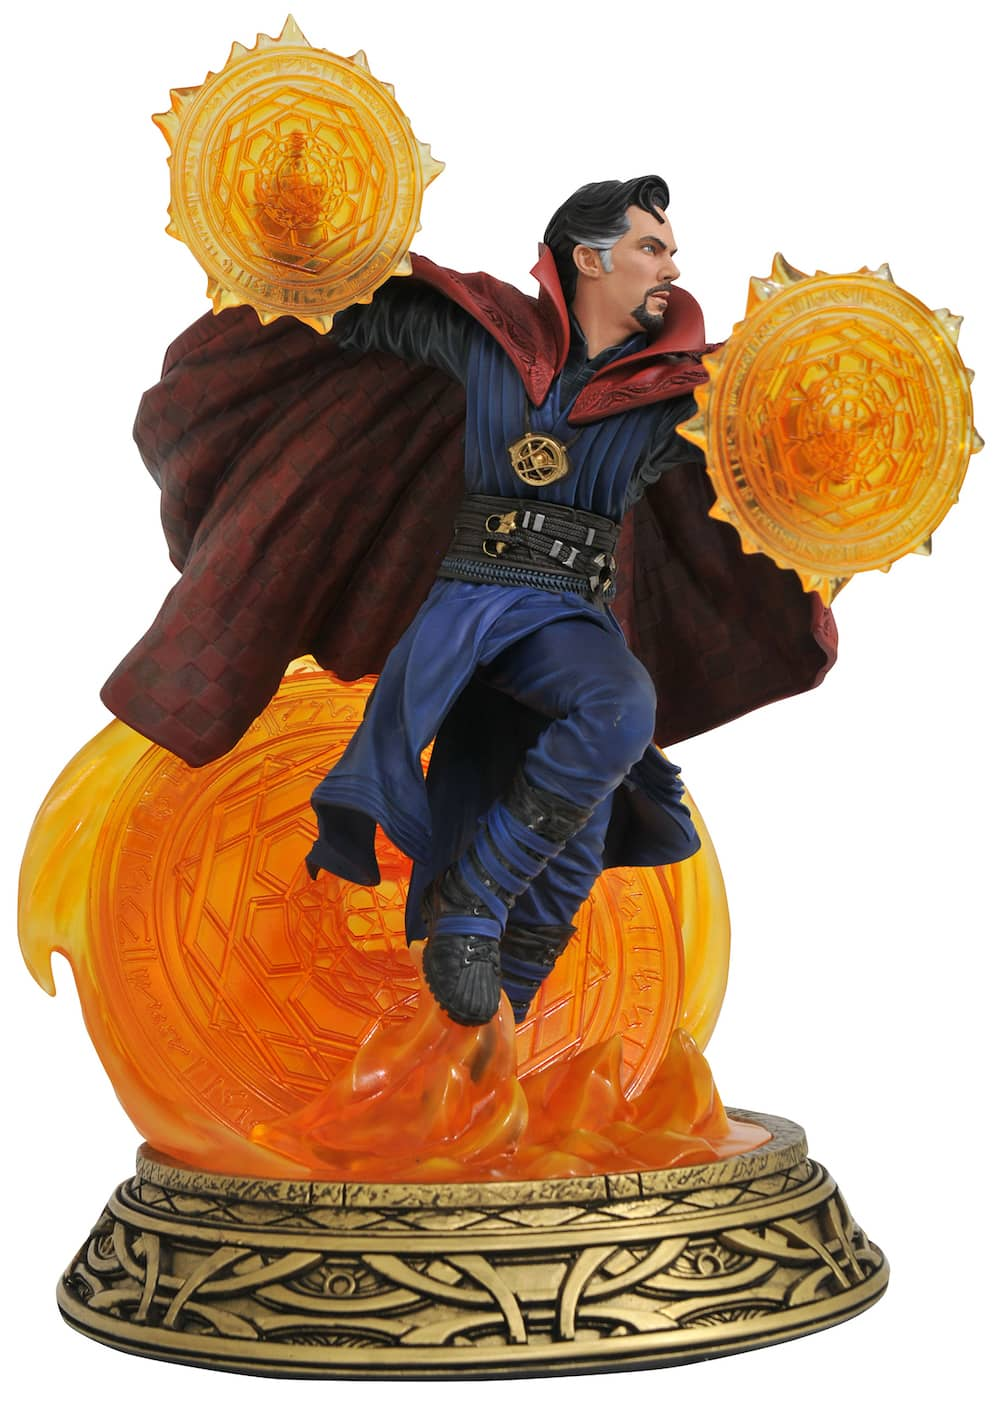 DOCTOR STRANGE ESTATUA RESINA 50 CM DOCTOR STRANGE MOVIE MARVEL MILESTONES